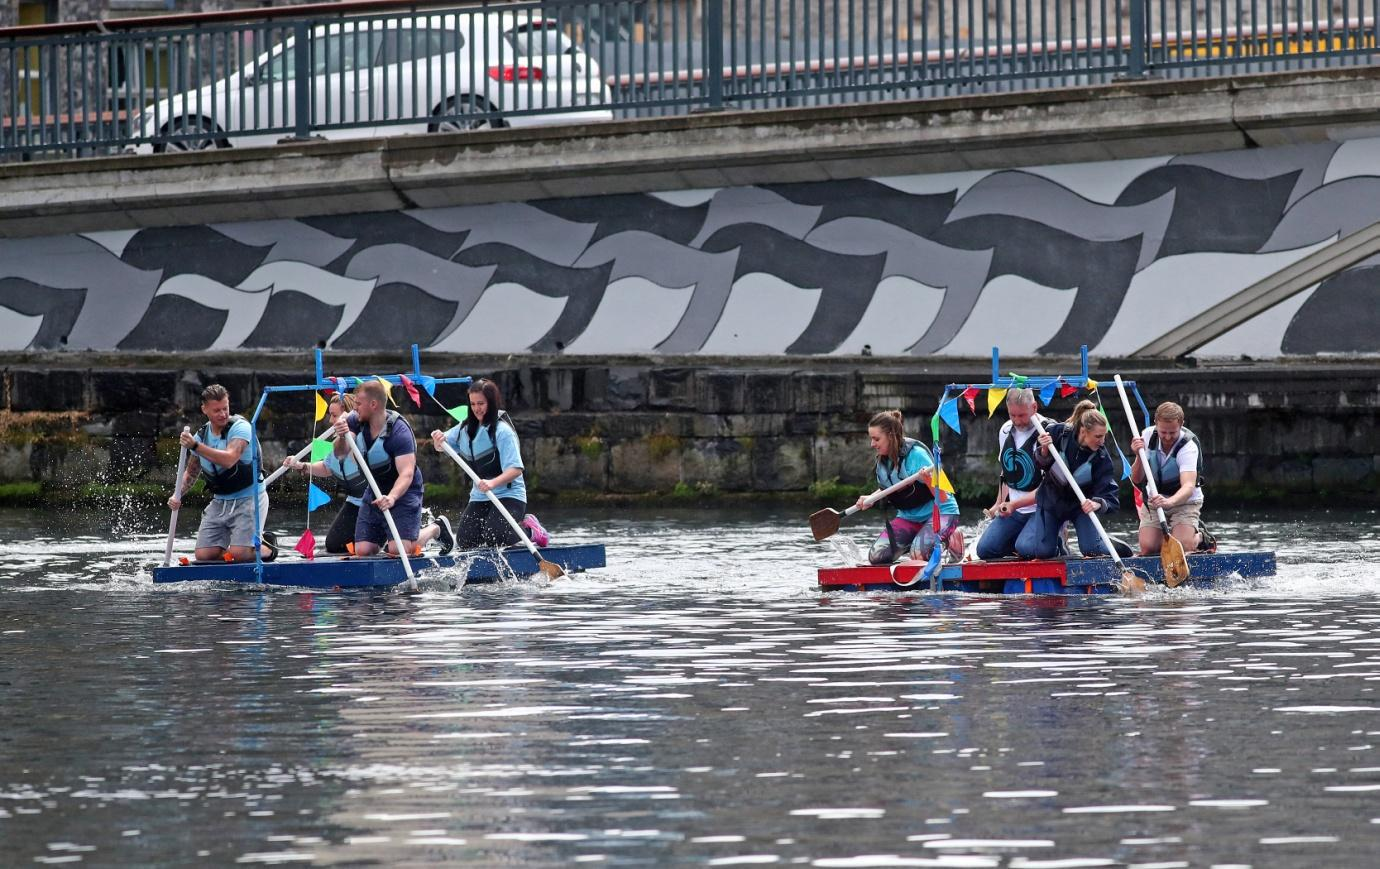 The mural as seen two weeks later during the charity raft race at the Forum's Docklands Summer Festival